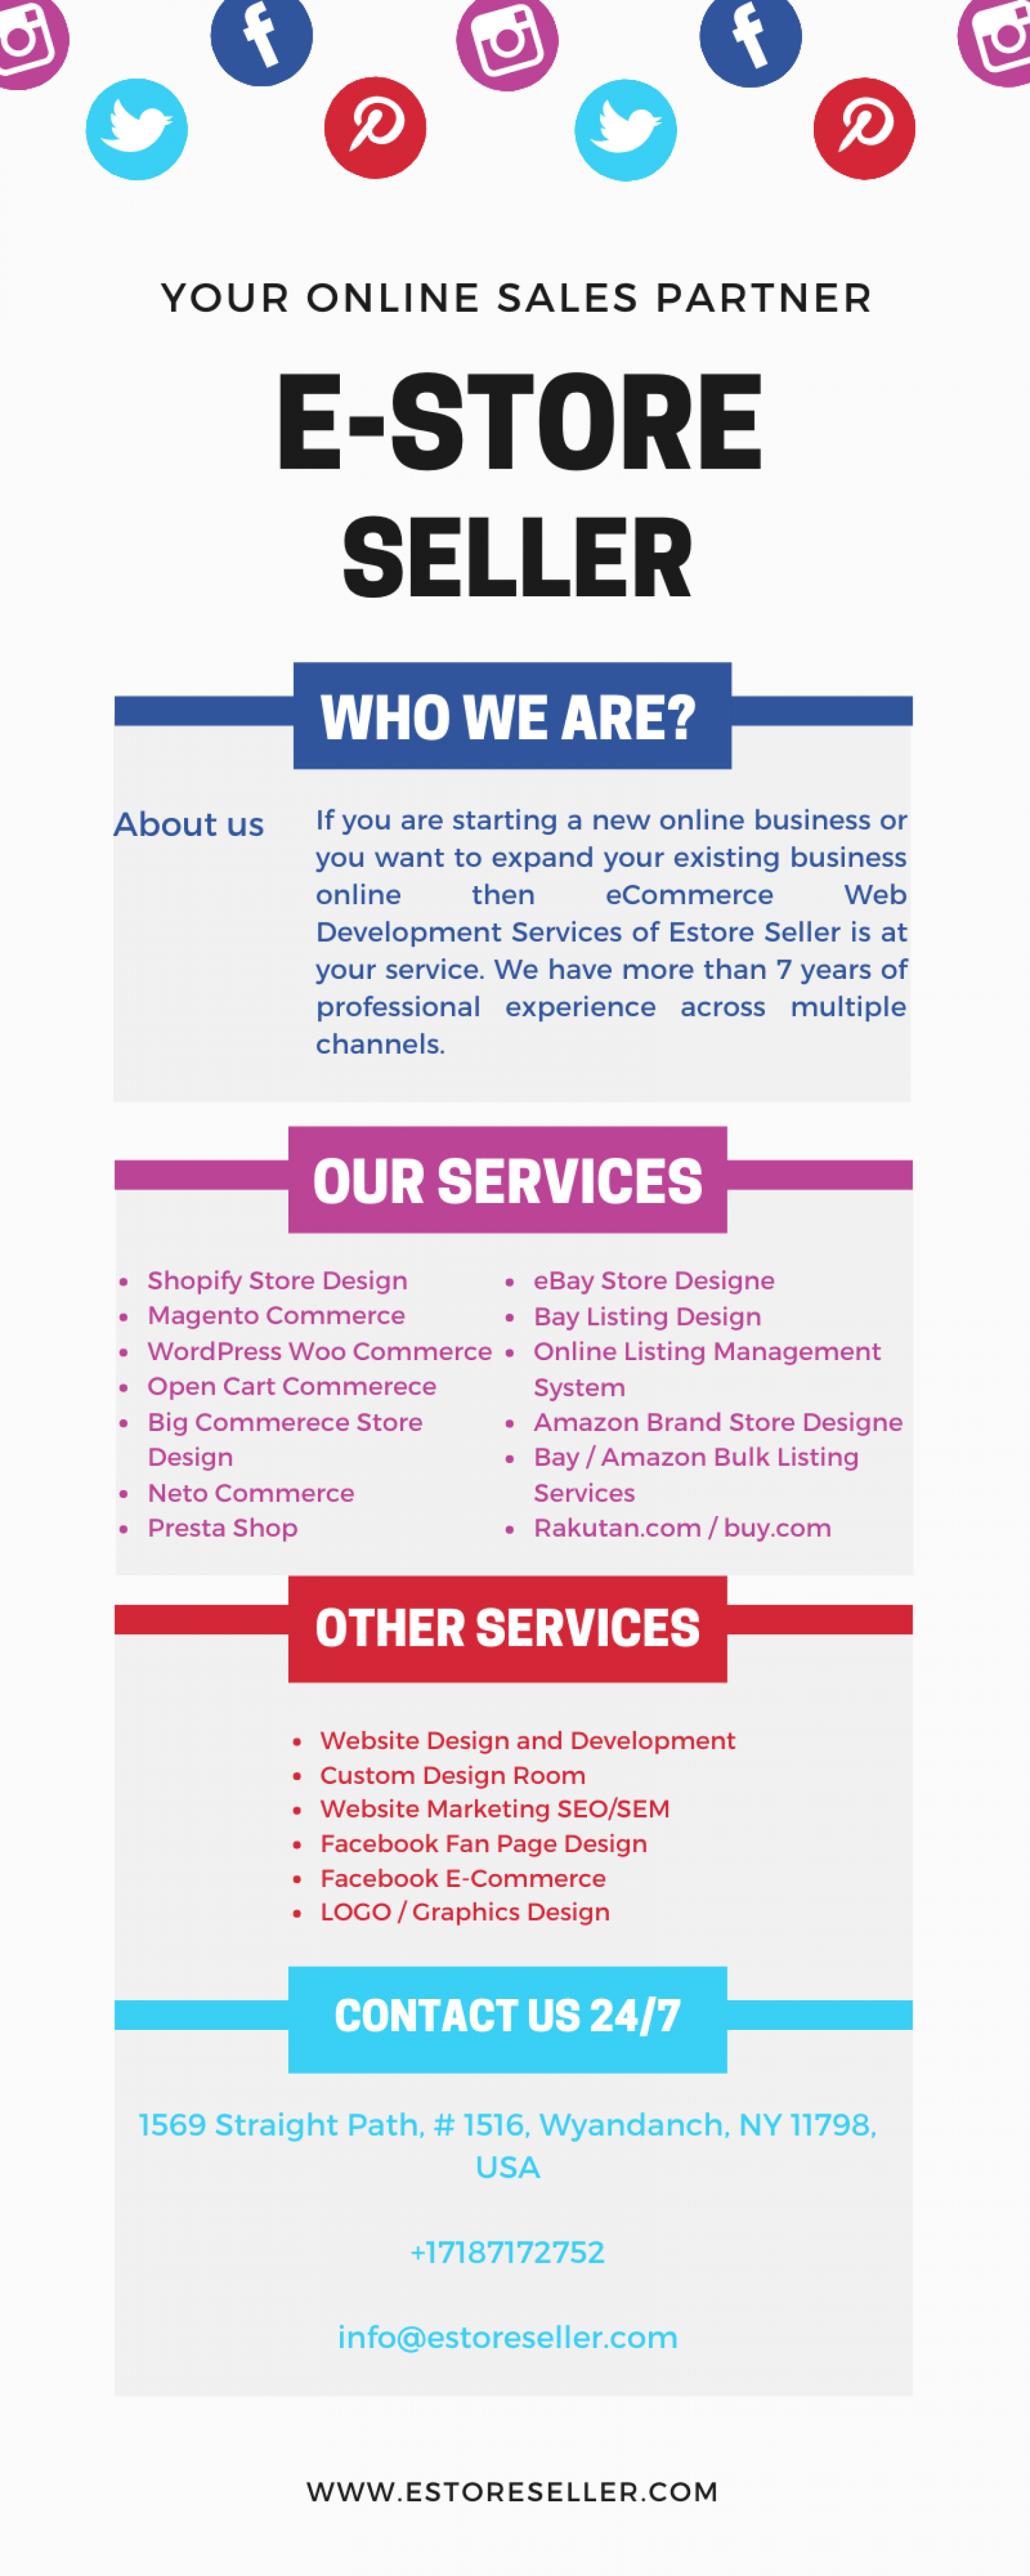 Best eCommerce and Web Development Services Provider Infographic